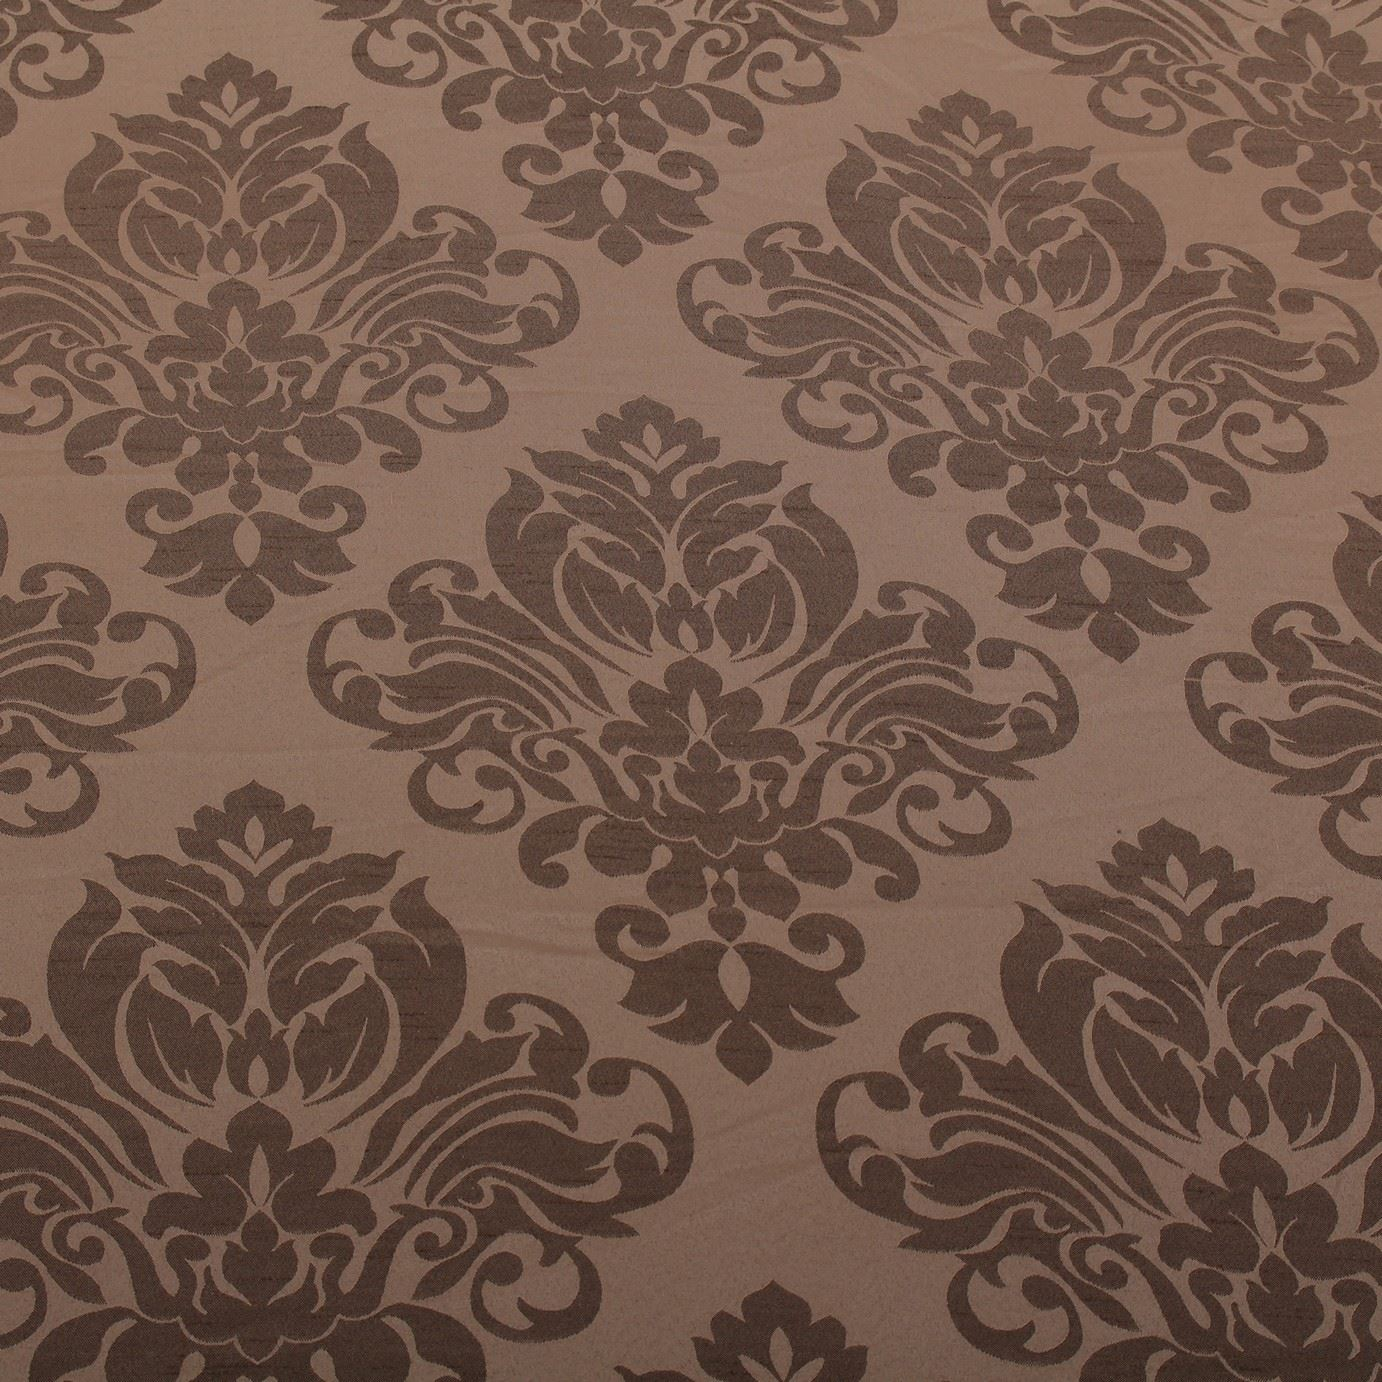 thumbnail 7 - FLORAL DAMASK FAUX SILK JACQUARD CURTAIN UPHOLSTERY FABRIC MATERIAL 12 COLOURS